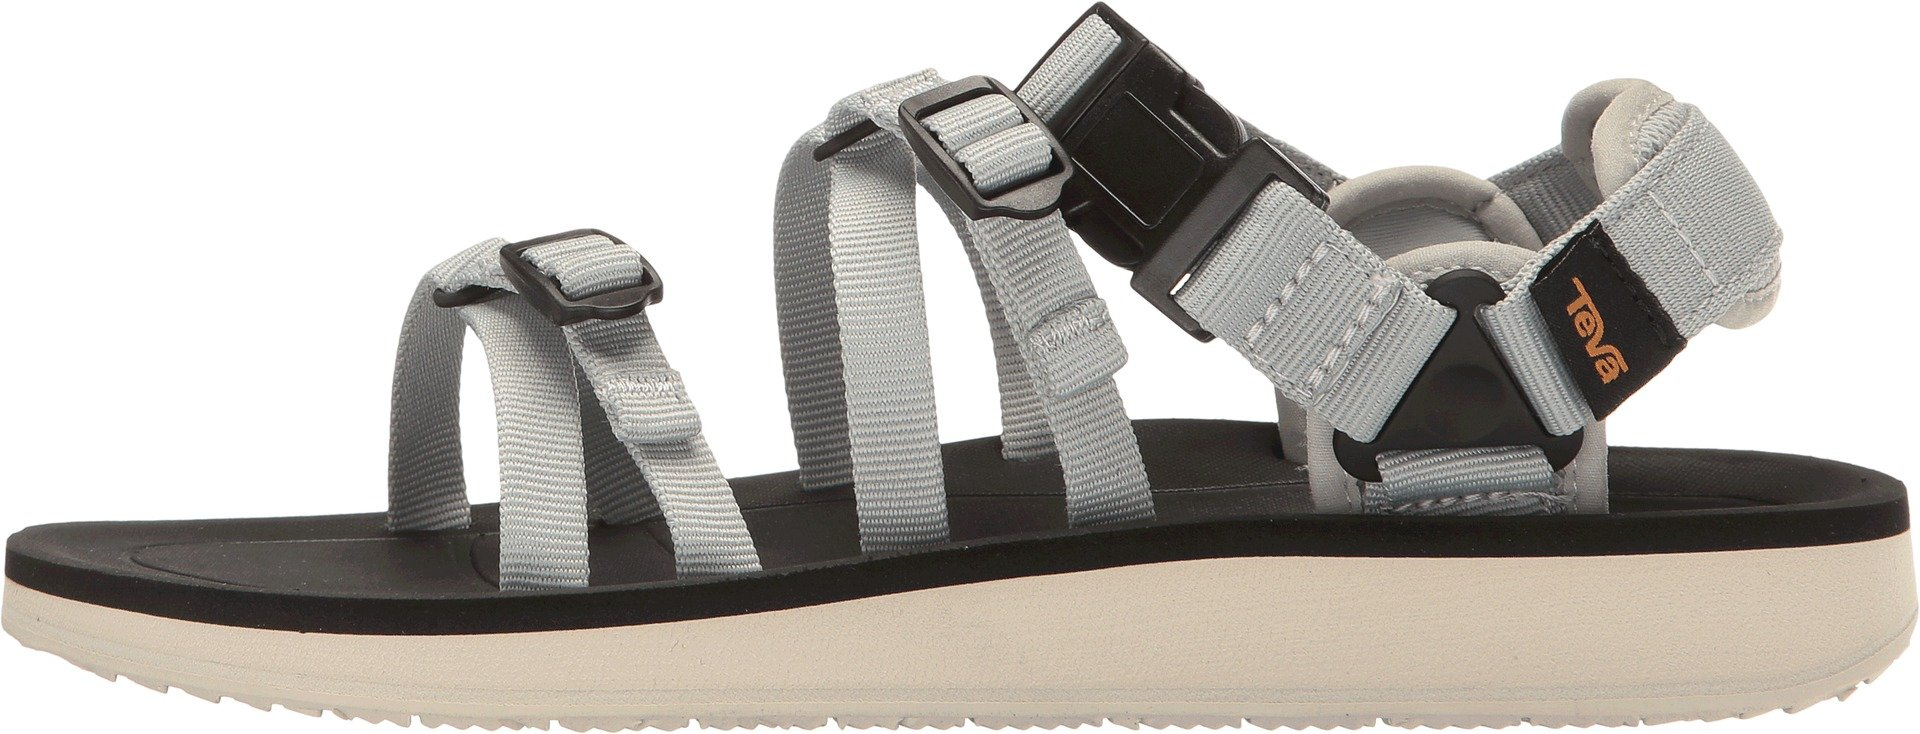 2634ae3b2 Galleon - Teva Women s ALP 2 Active Sandal